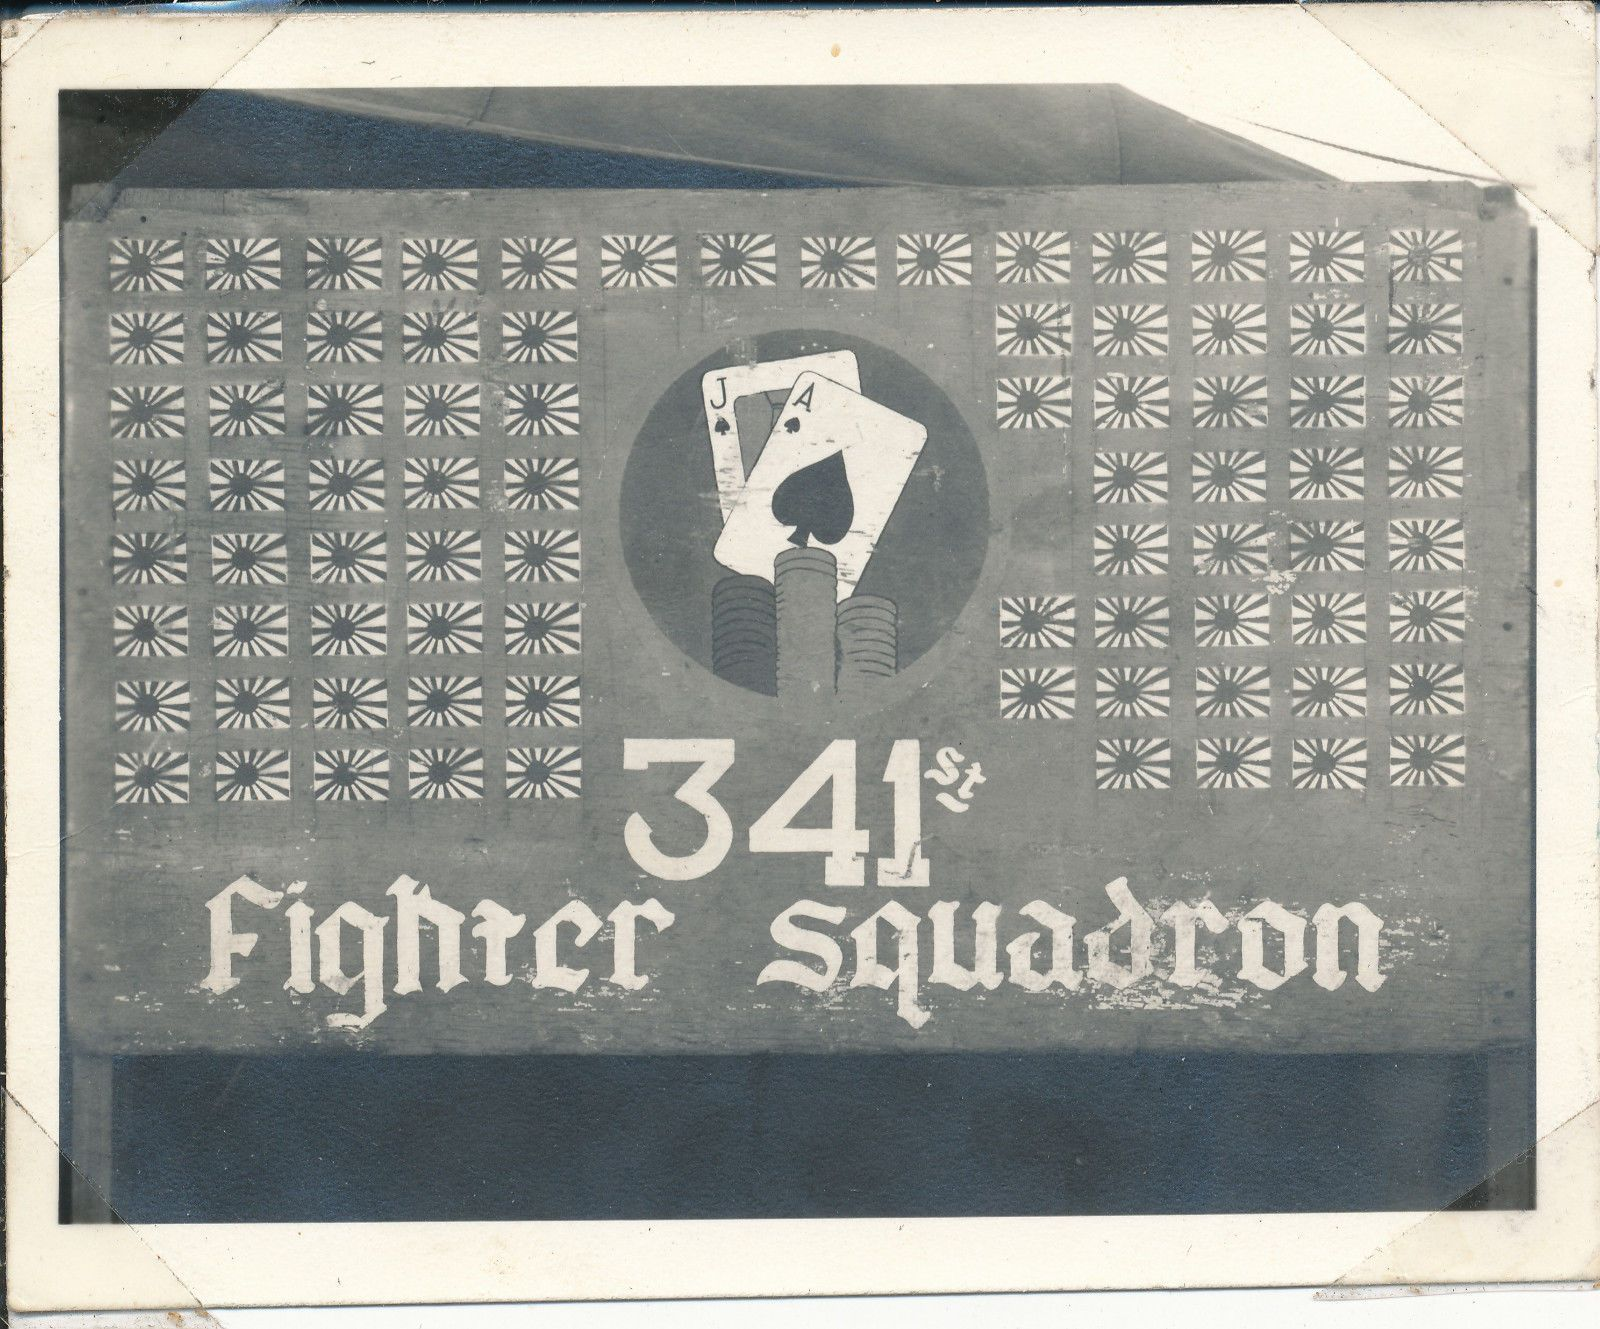 emblem_13_1945-341st-Fighter-Squadron-sign-with-Flag-score.jpg